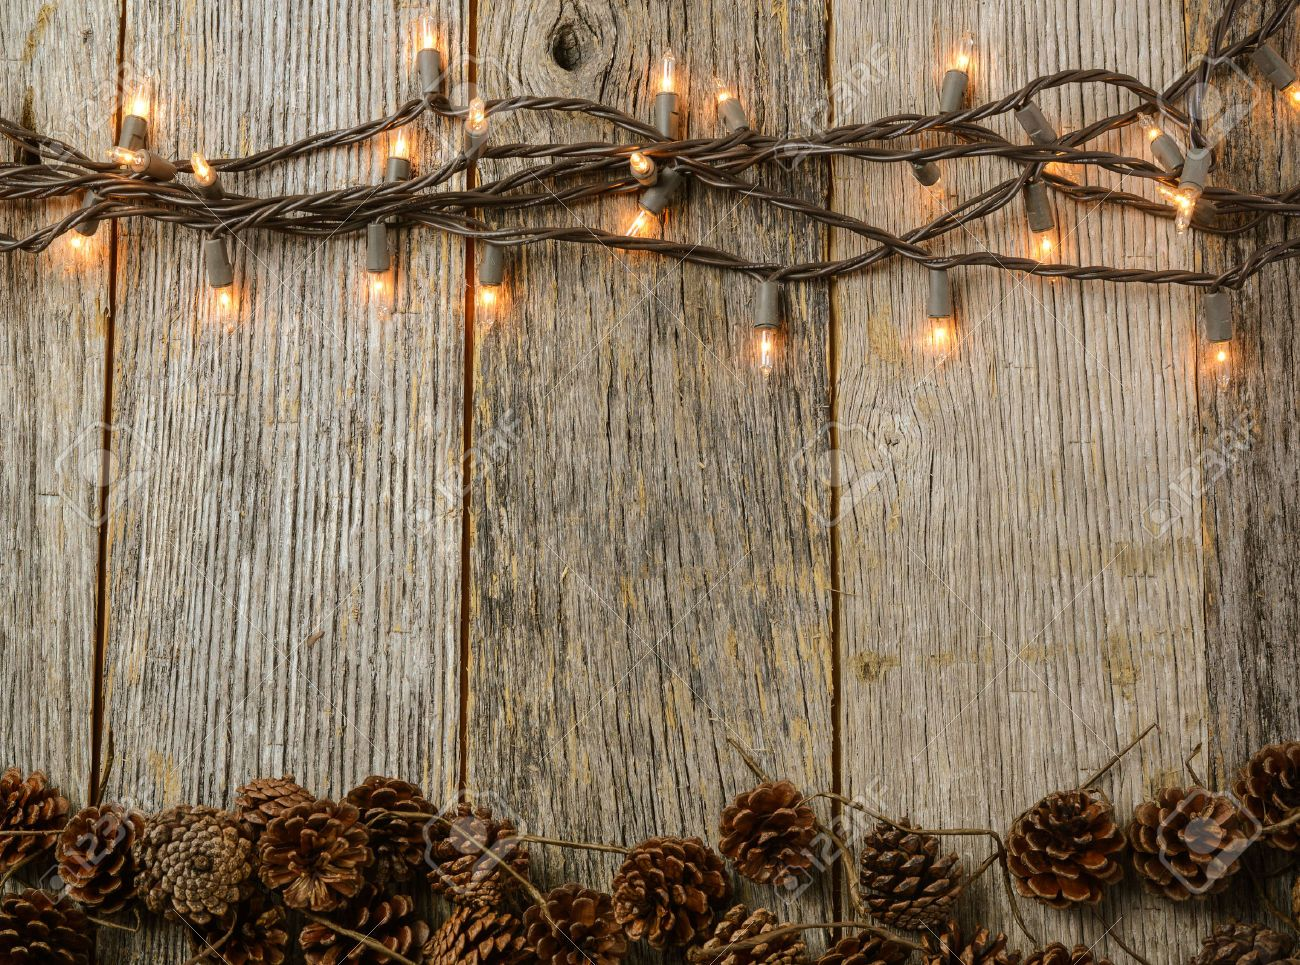 Fall String Lights Wallpaper Weddings Christmas Lights And Pine Cones On Rustic Wood Background